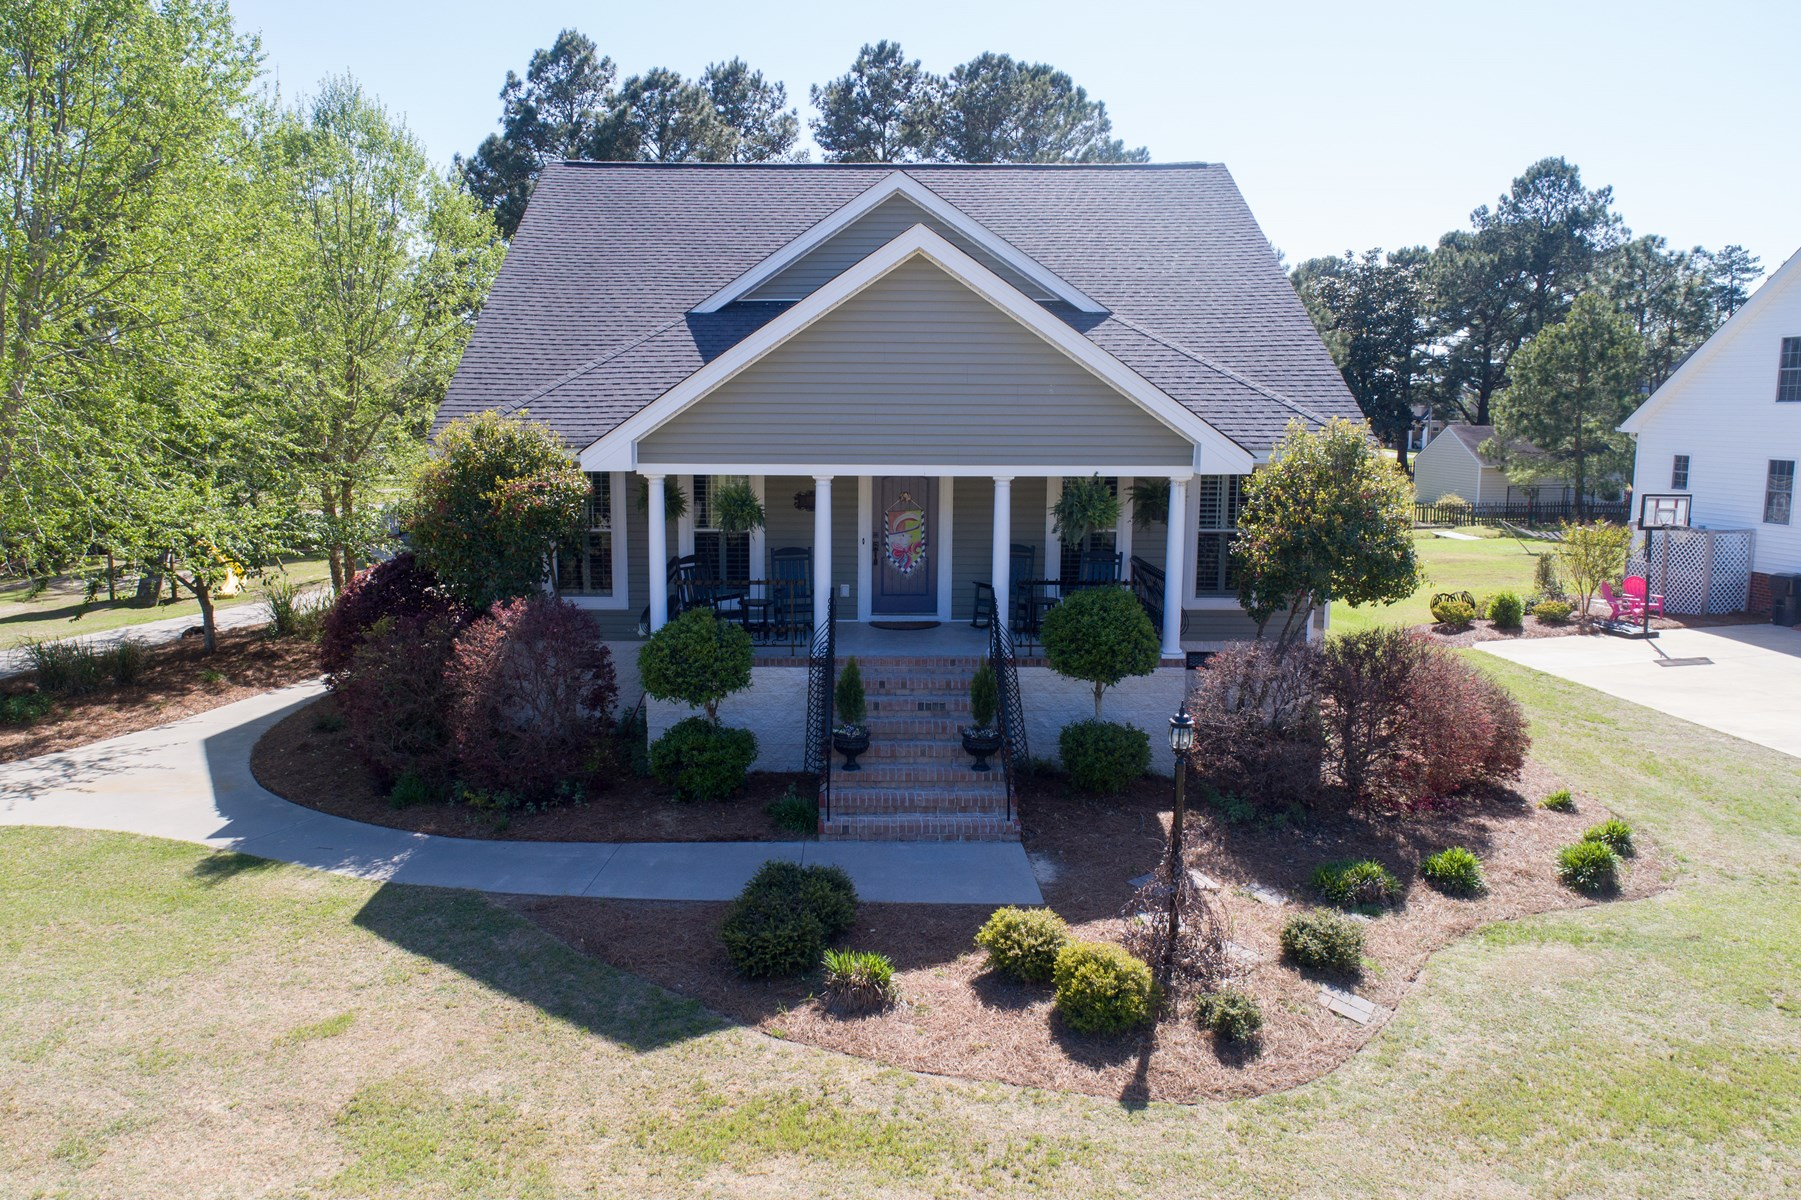 Home With Pool For Sale in Washington, NC, Beaufort County